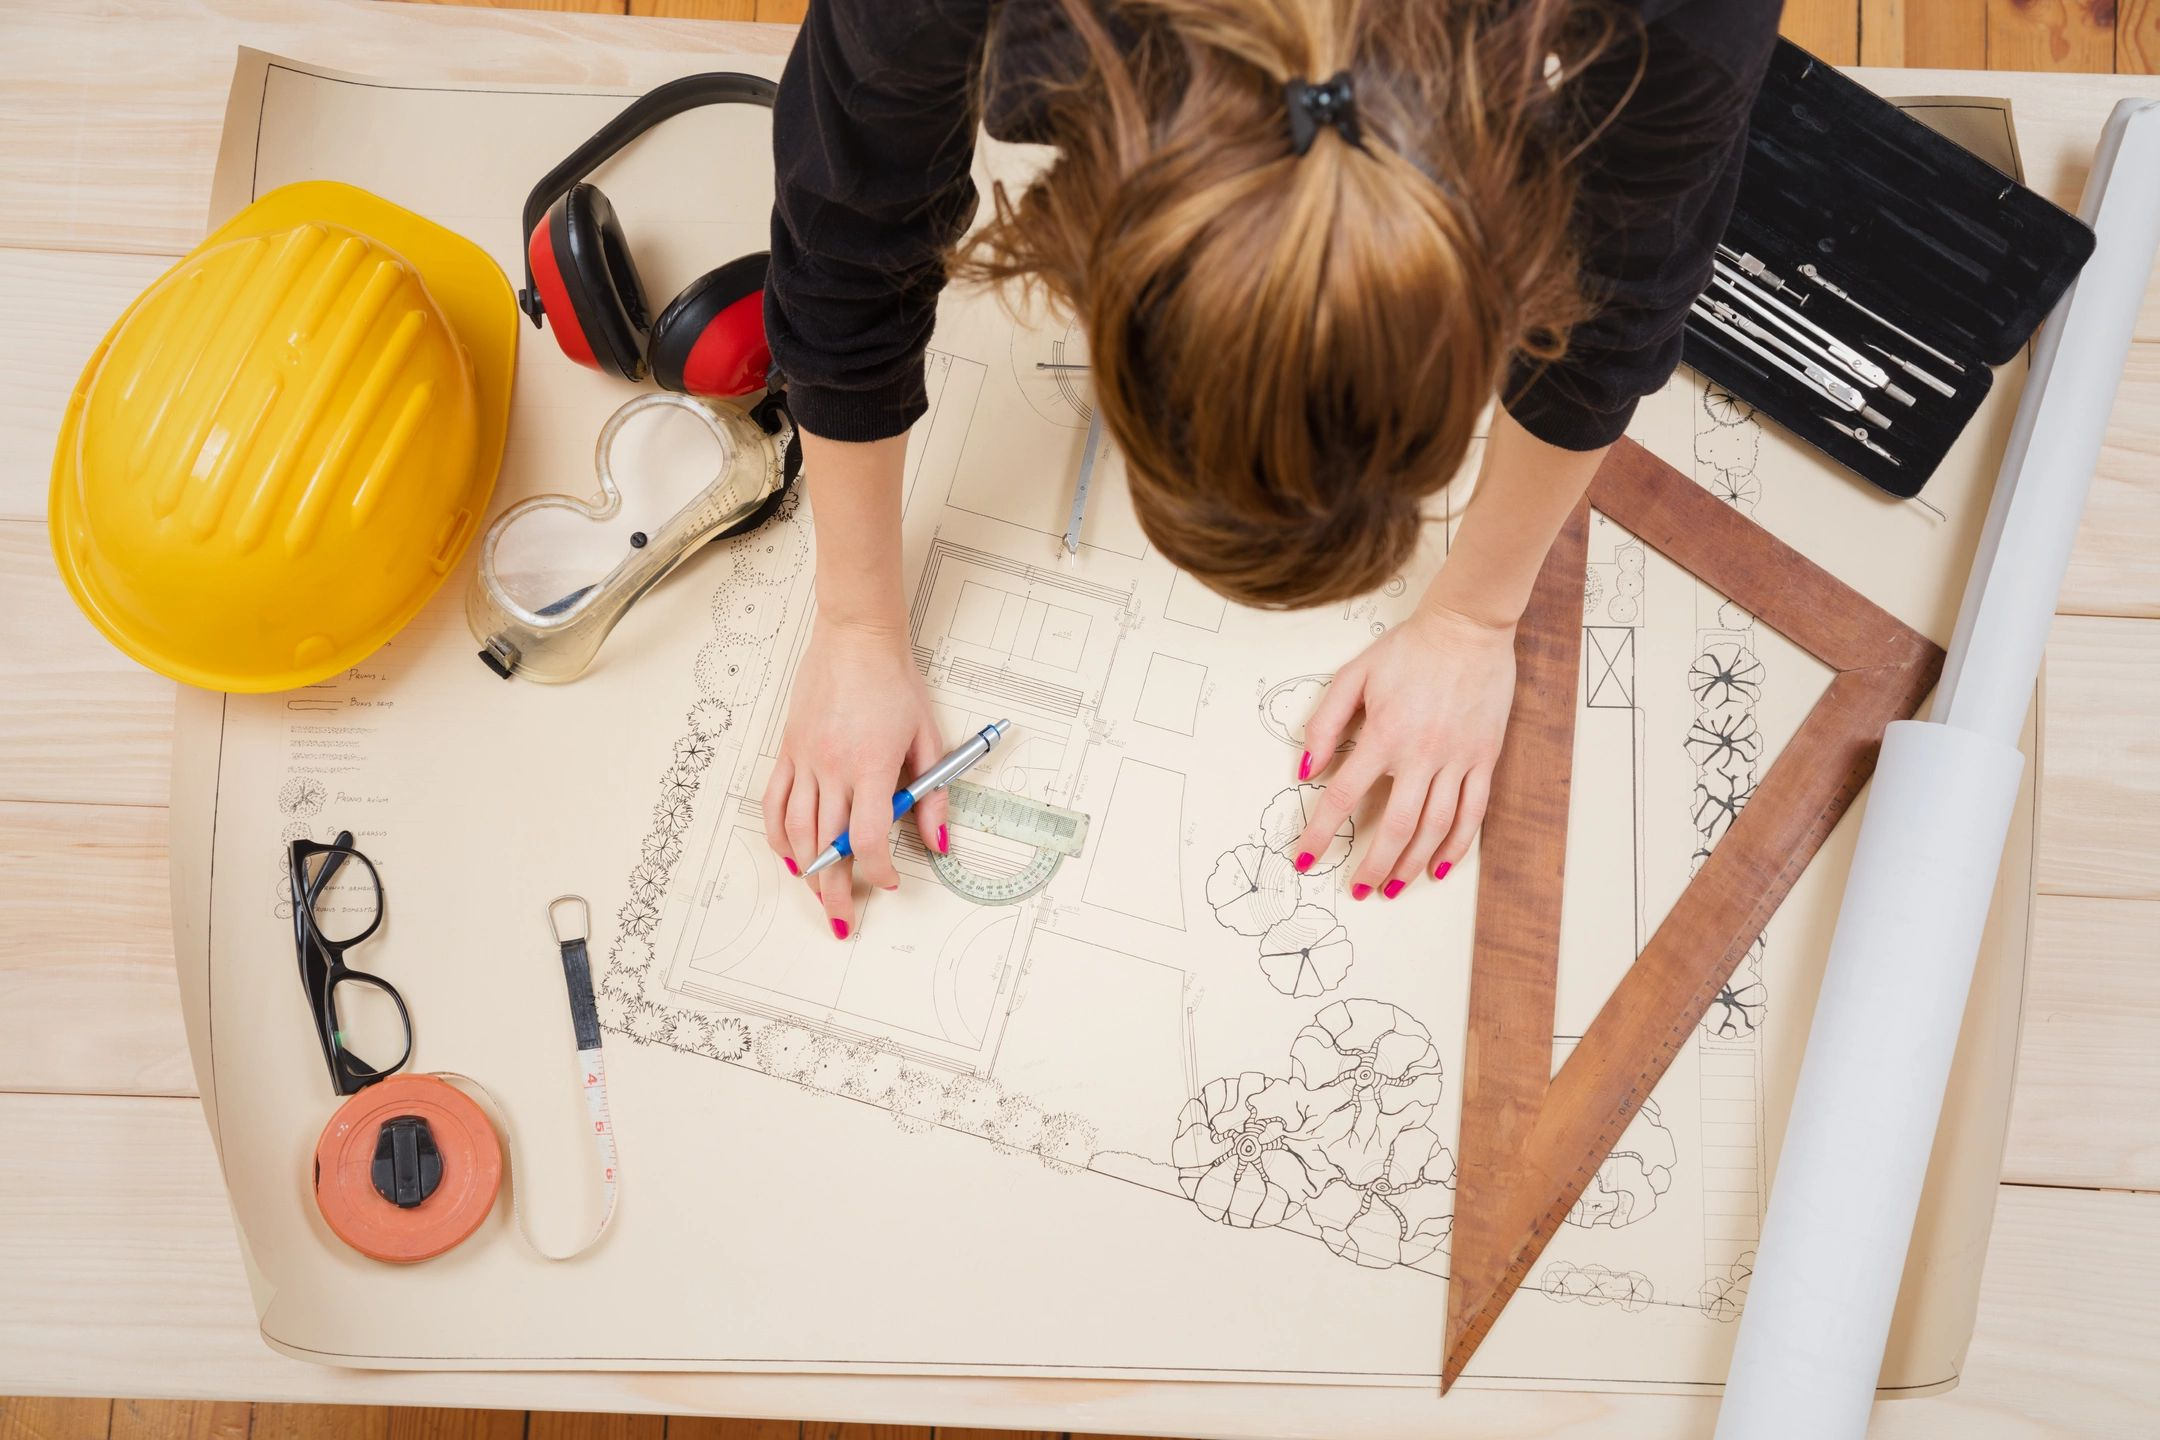 Woman working on a landscape design project